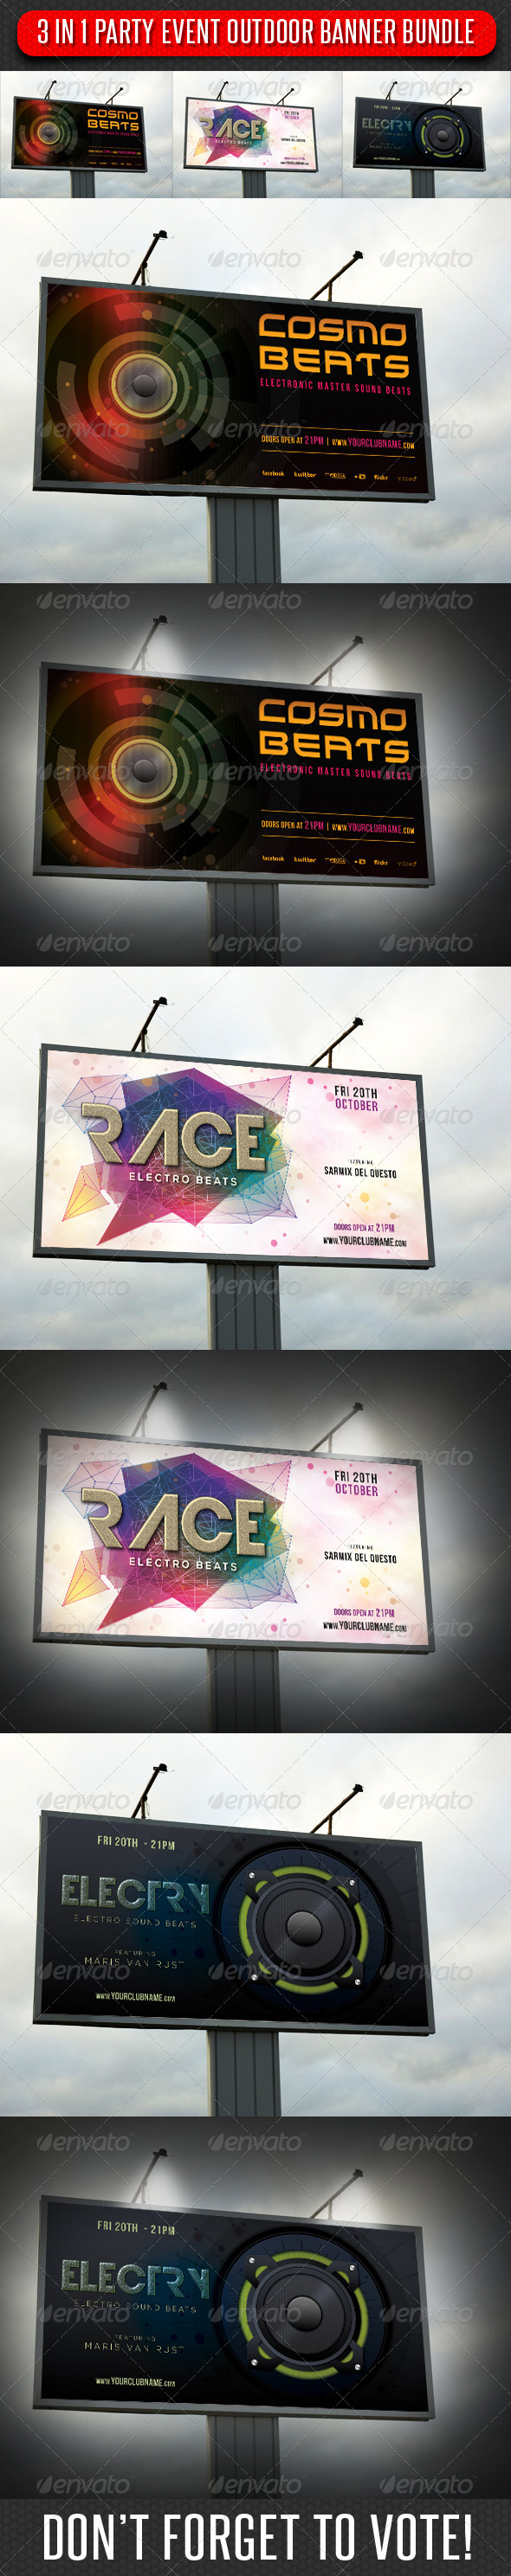 3 in 1 Party Event Outdoor Banner Bundle 01 - Signage Print Templates